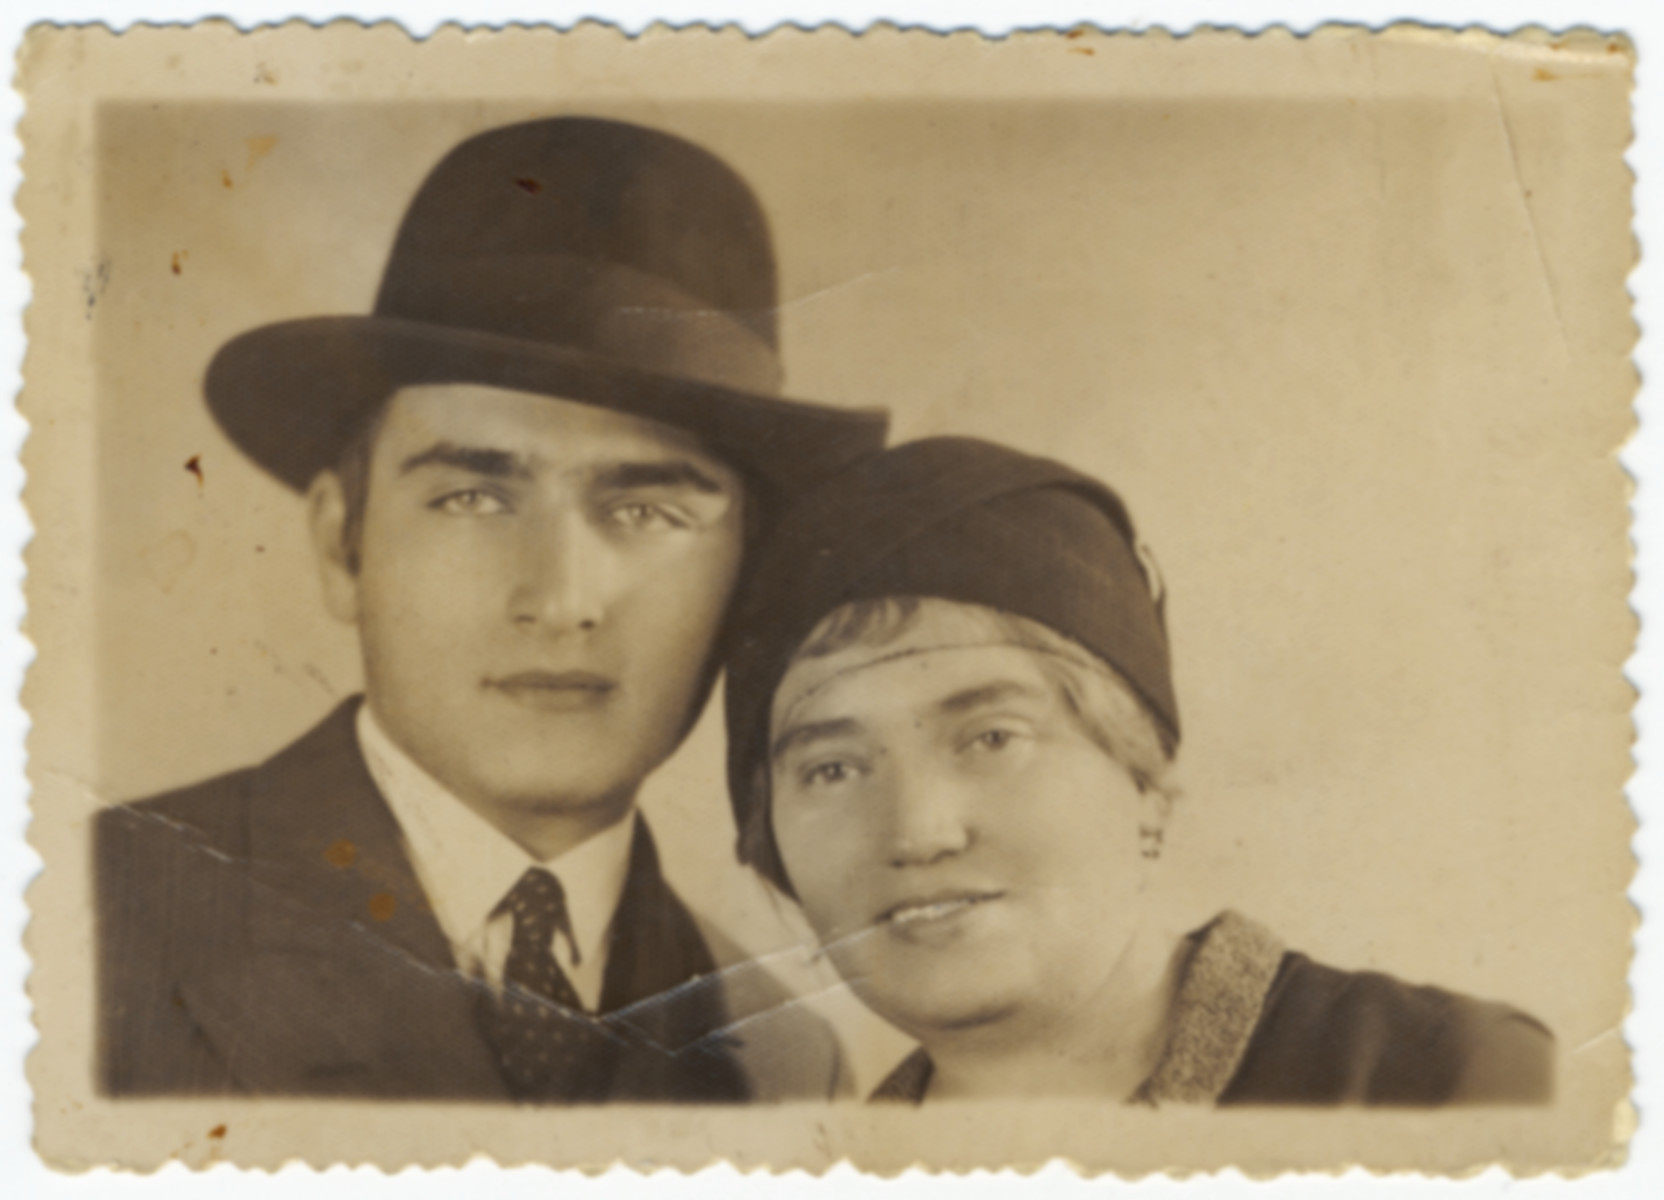 Close-up portrait of a religious Jewish man and his mother.  Pictured are Laszlp (Moishe Tovia) Weiss and his mother Sara Weiss, the father and grandmother of the donor.